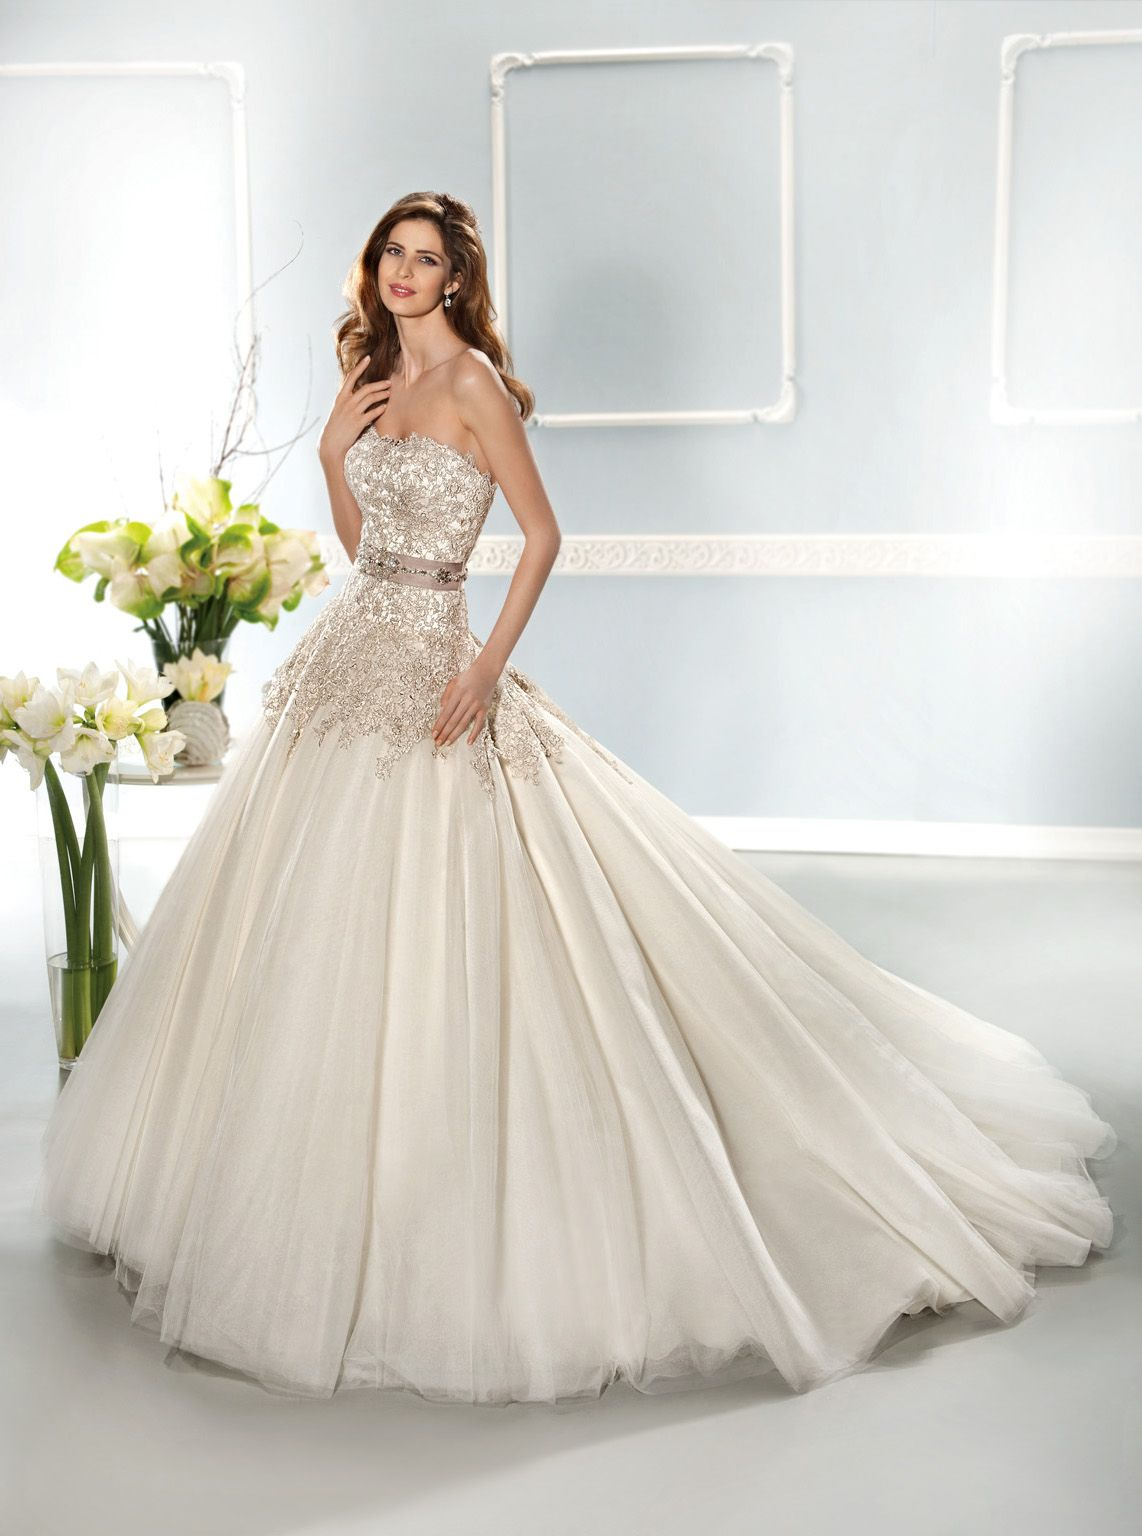 Contemporary Best Bridal Gowns 2014 Composition - Colorful Wedding ...